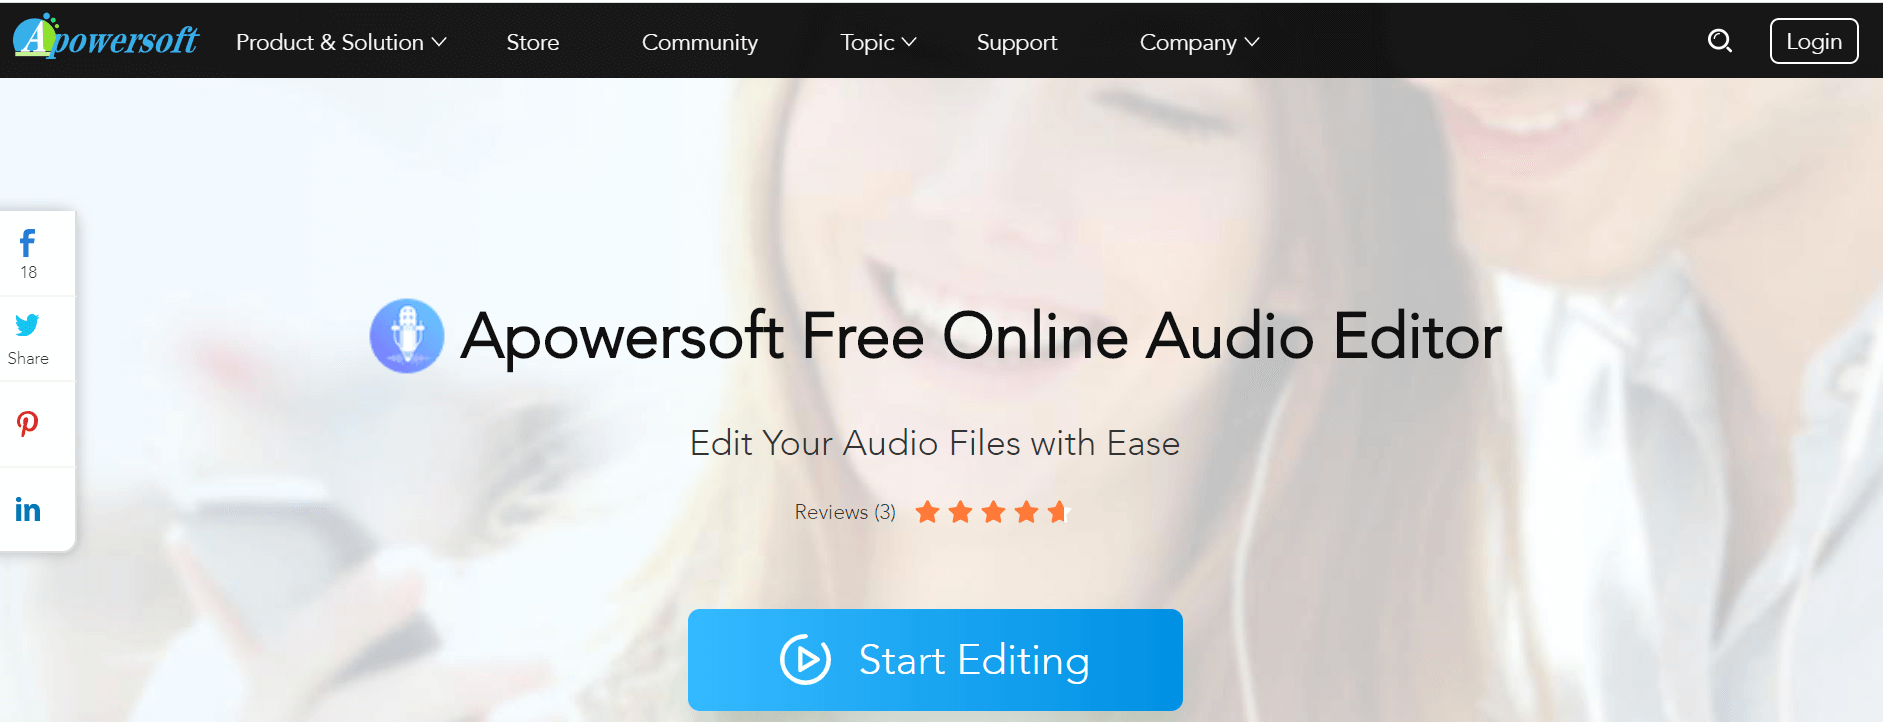 Apowersoft Free Online Audio Editor